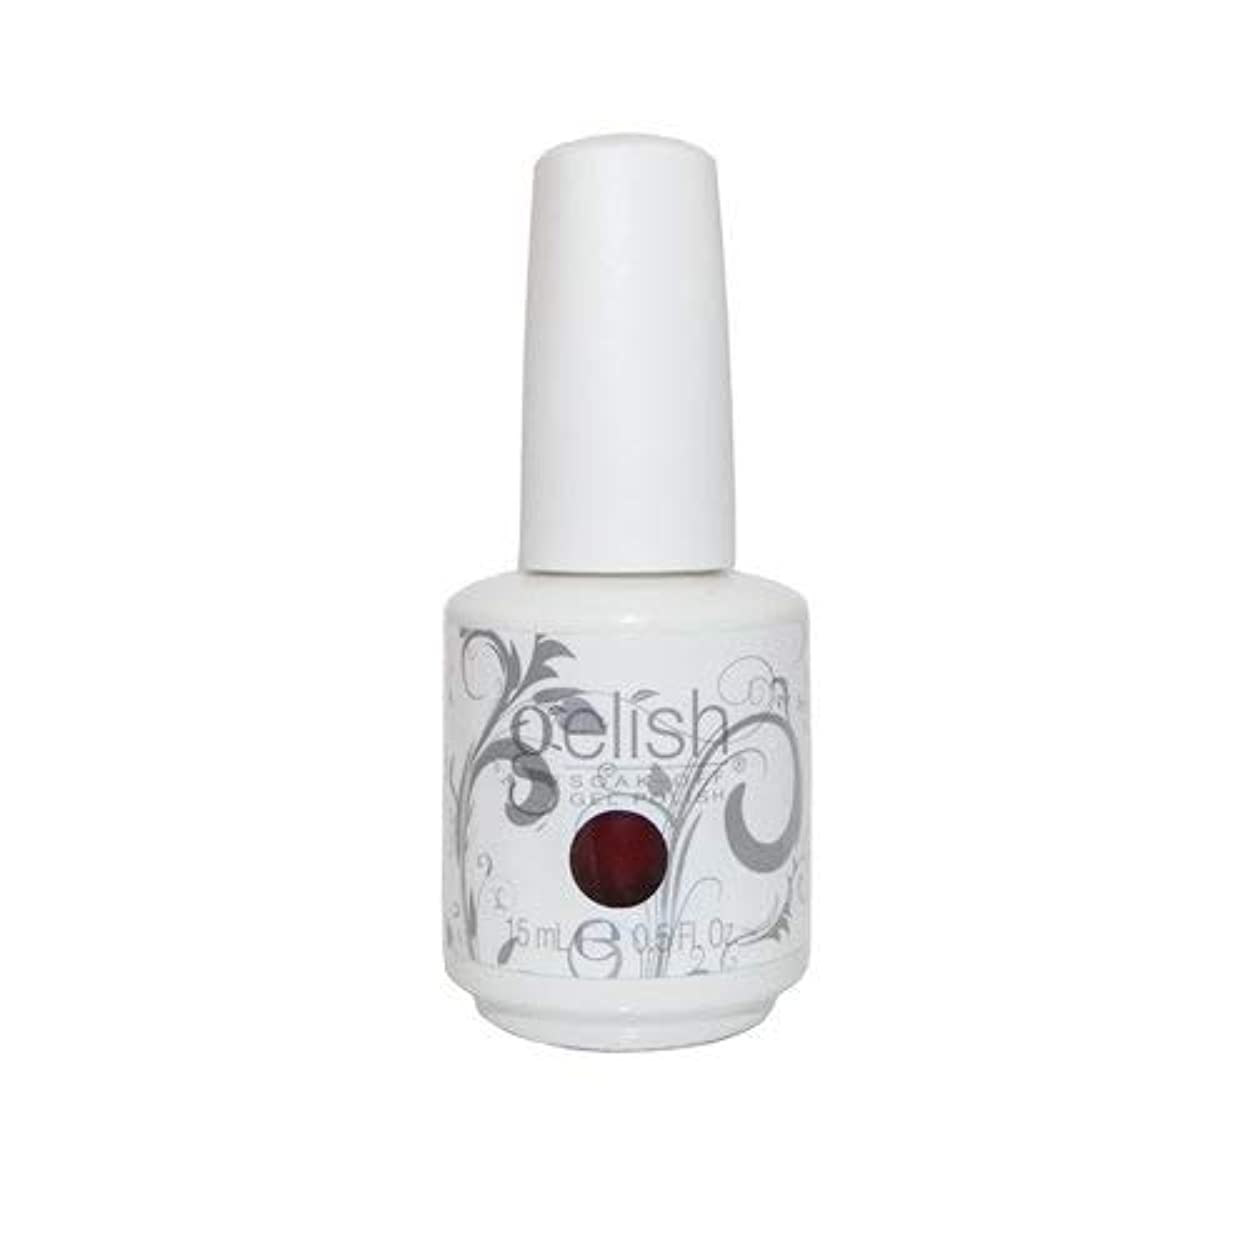 Harmony Gelish Gel Polish - What's Your Poinsettia? - 0.5oz / 15ml